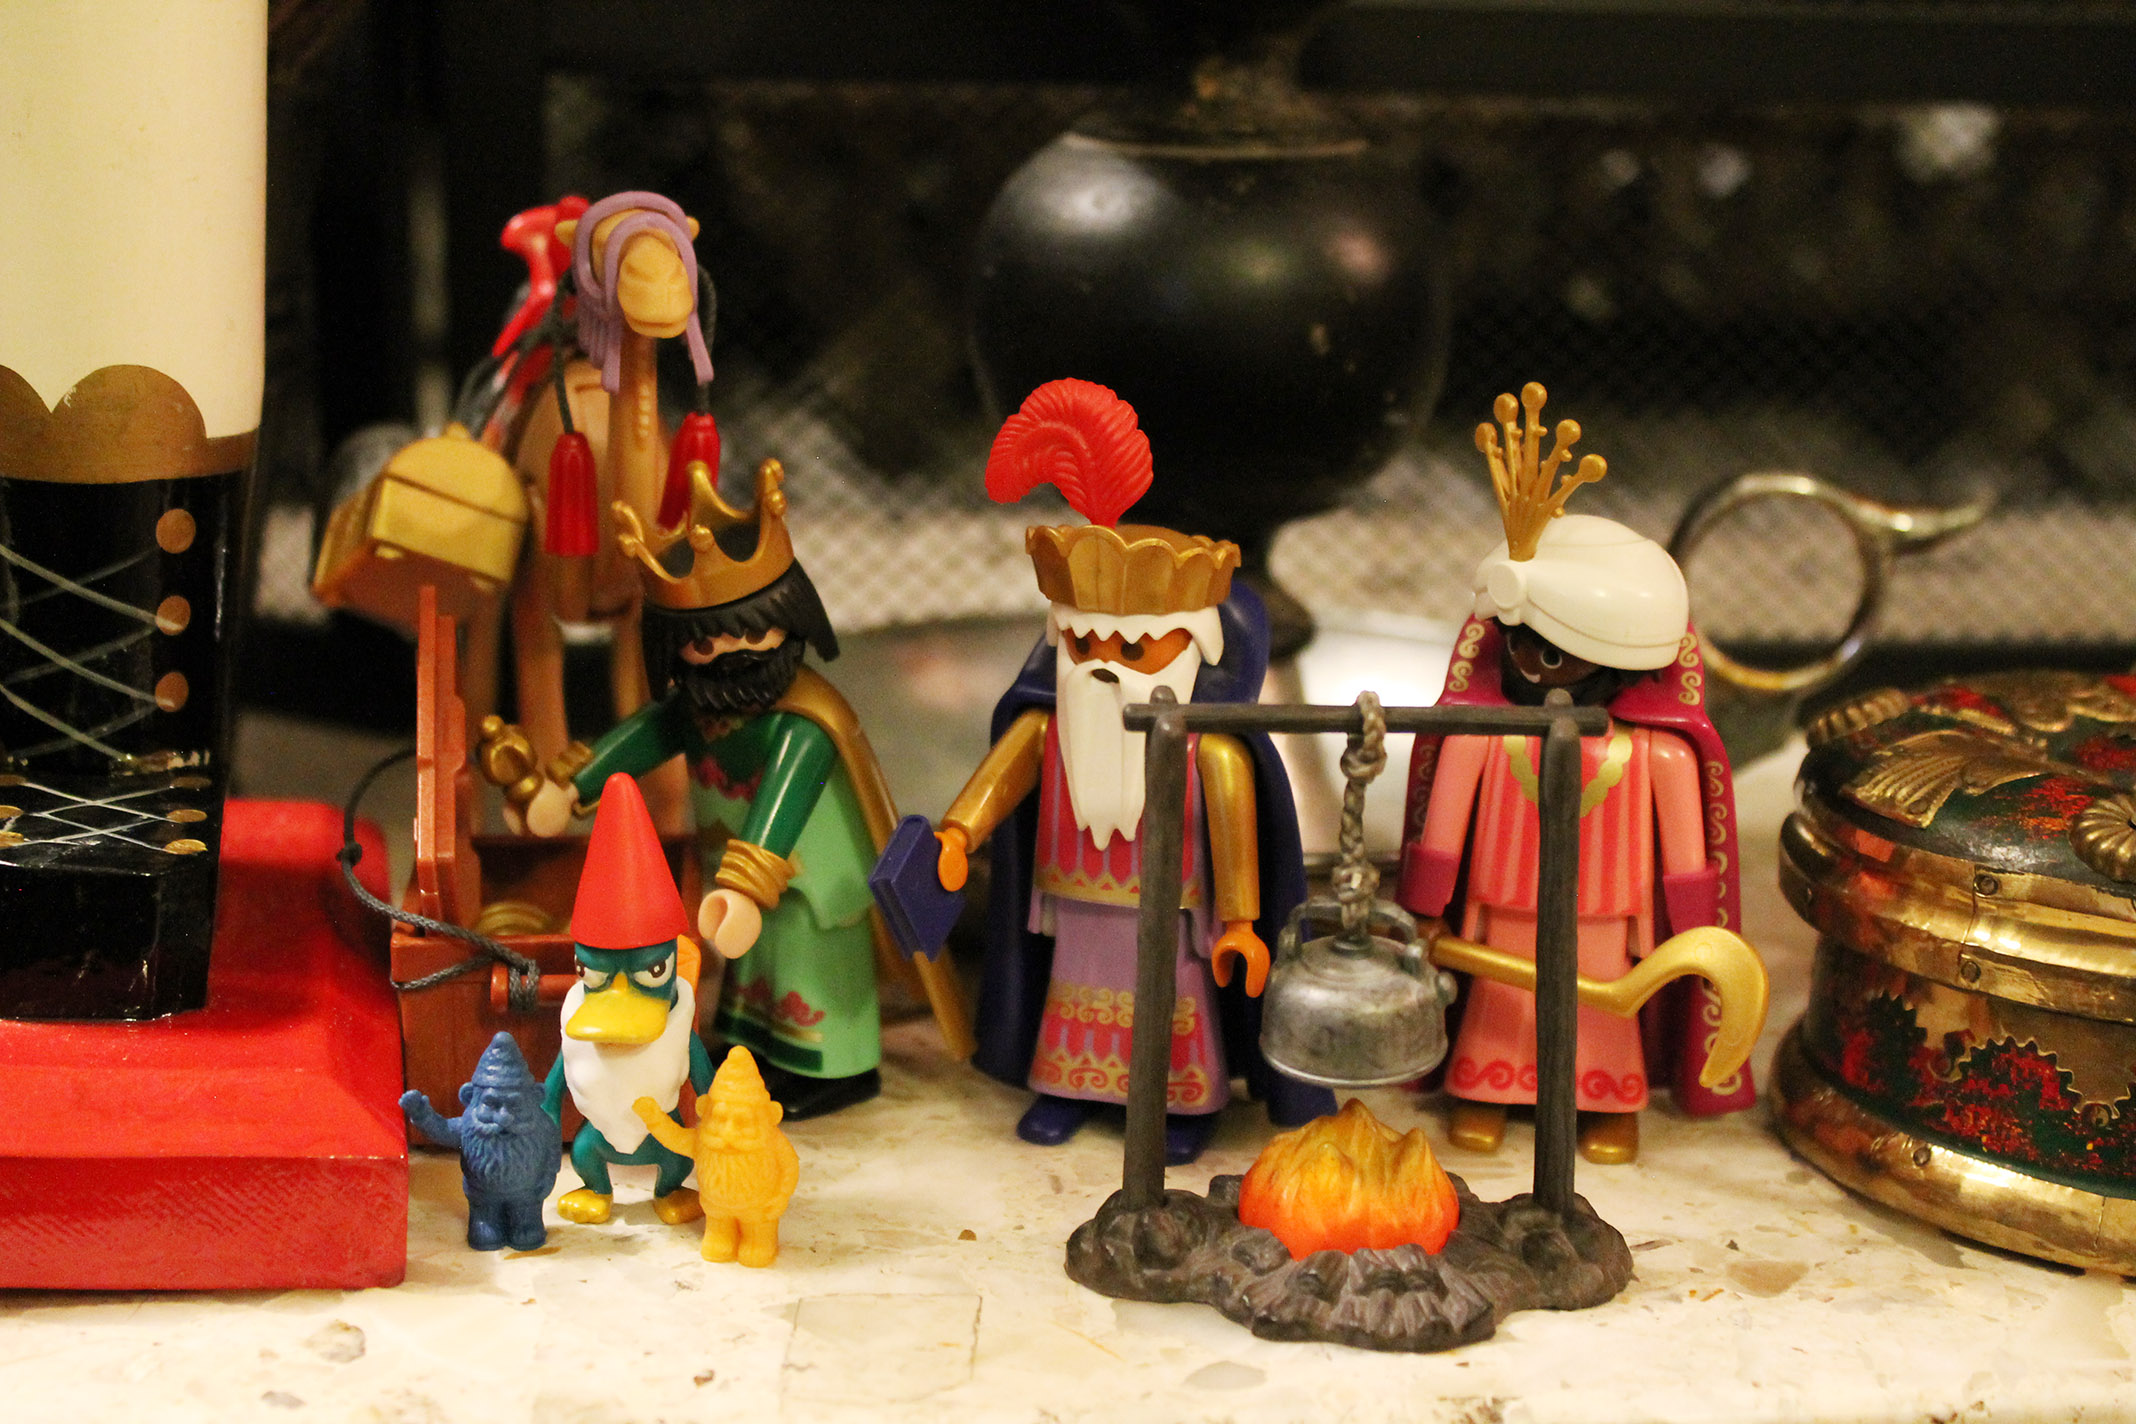 Three wisemen, gnomes, and Perry the Platypus.